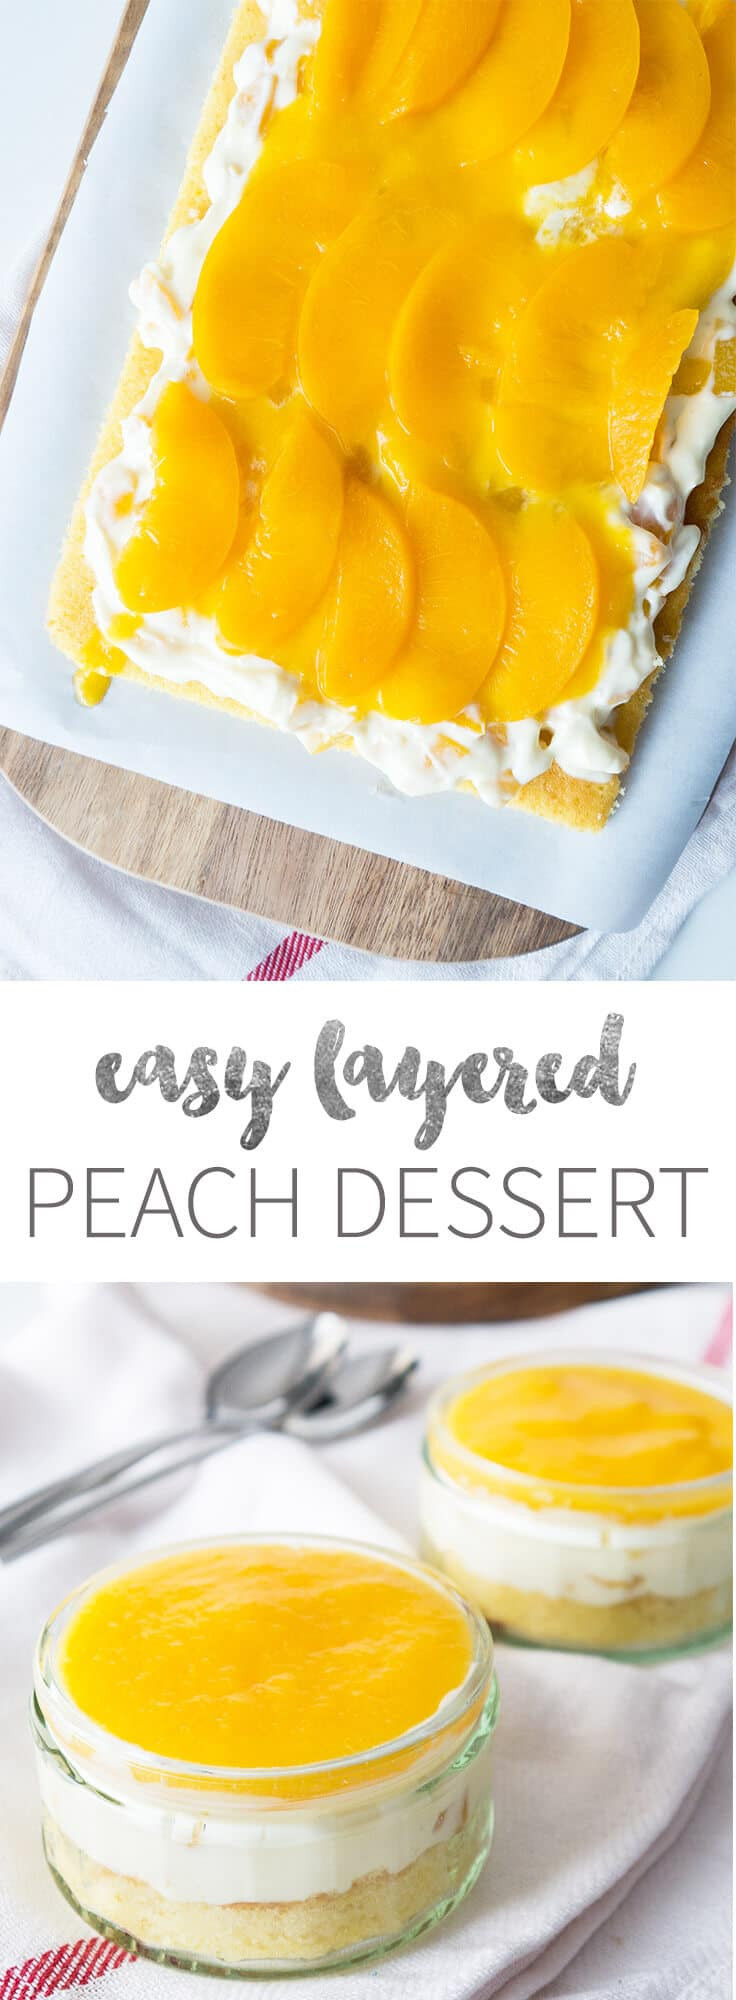 Peach Desserts Easy  Easy Canned Peach Dessert w Vanilla & Sour Cream